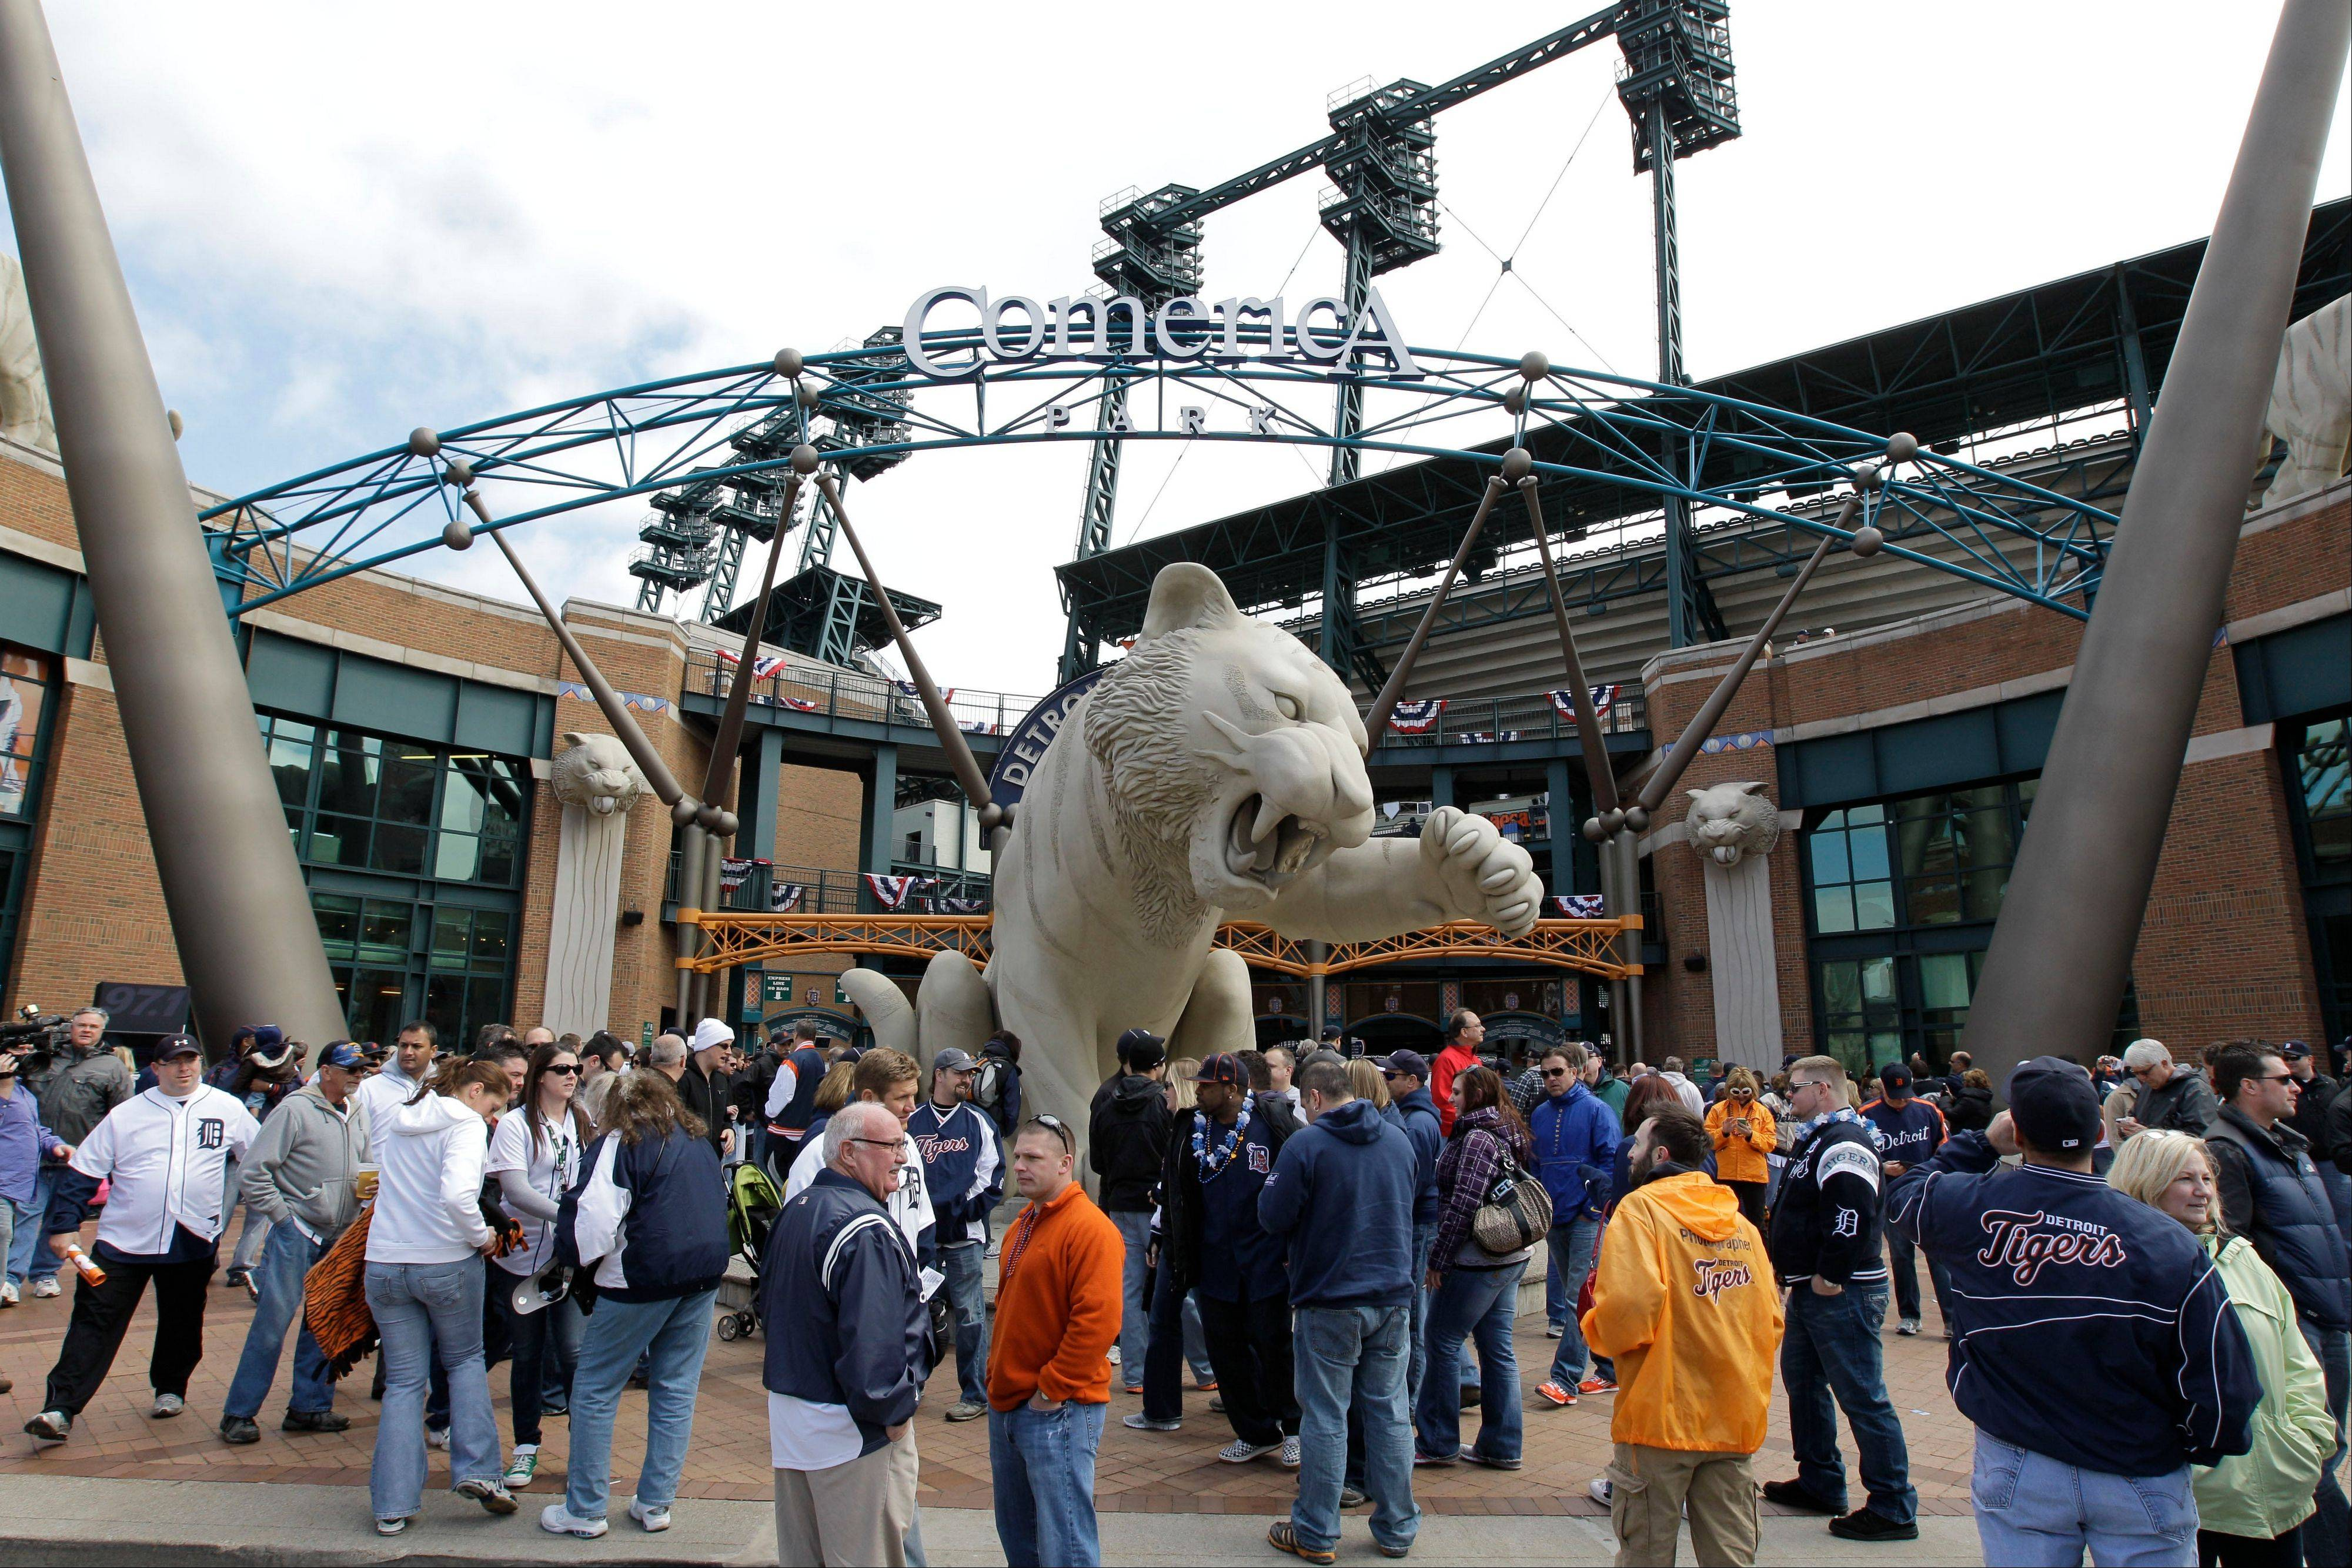 Comerica Park is the latest Detroit landmark to be the subject of a bomb threat. Police say an anonymous caller issued the threat in a 911 call around 8 p.m. Tuesday, July 17, 2012, as the Tigers were hosting the Los Angeles Angels in front of 34,000 fans.